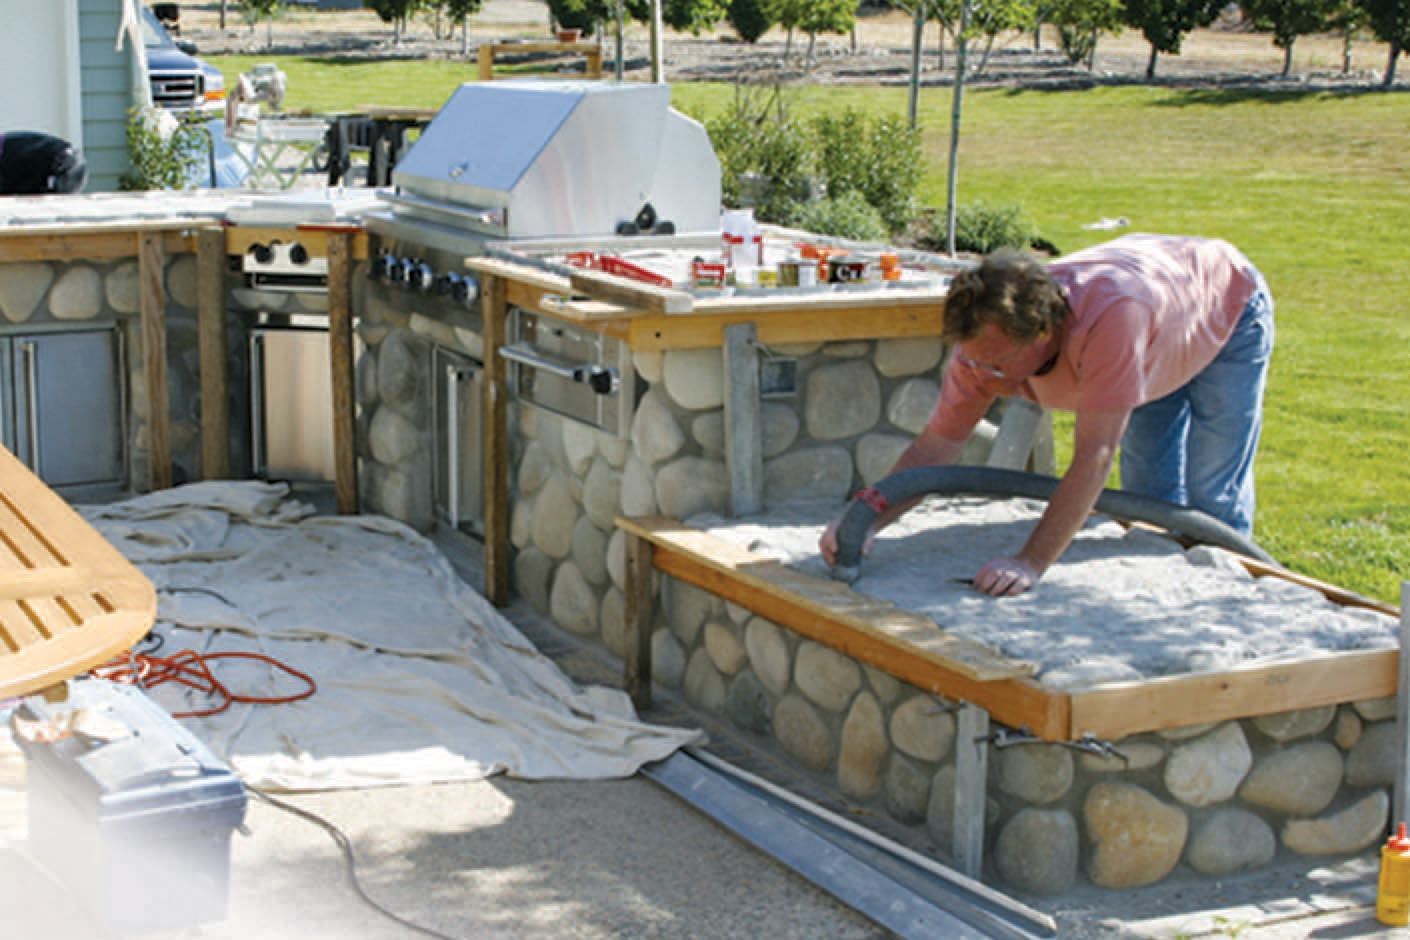 Concrete Countertop Reinforcement Tiling An Outdoor Countertop With A Reinforced Mortar Bed